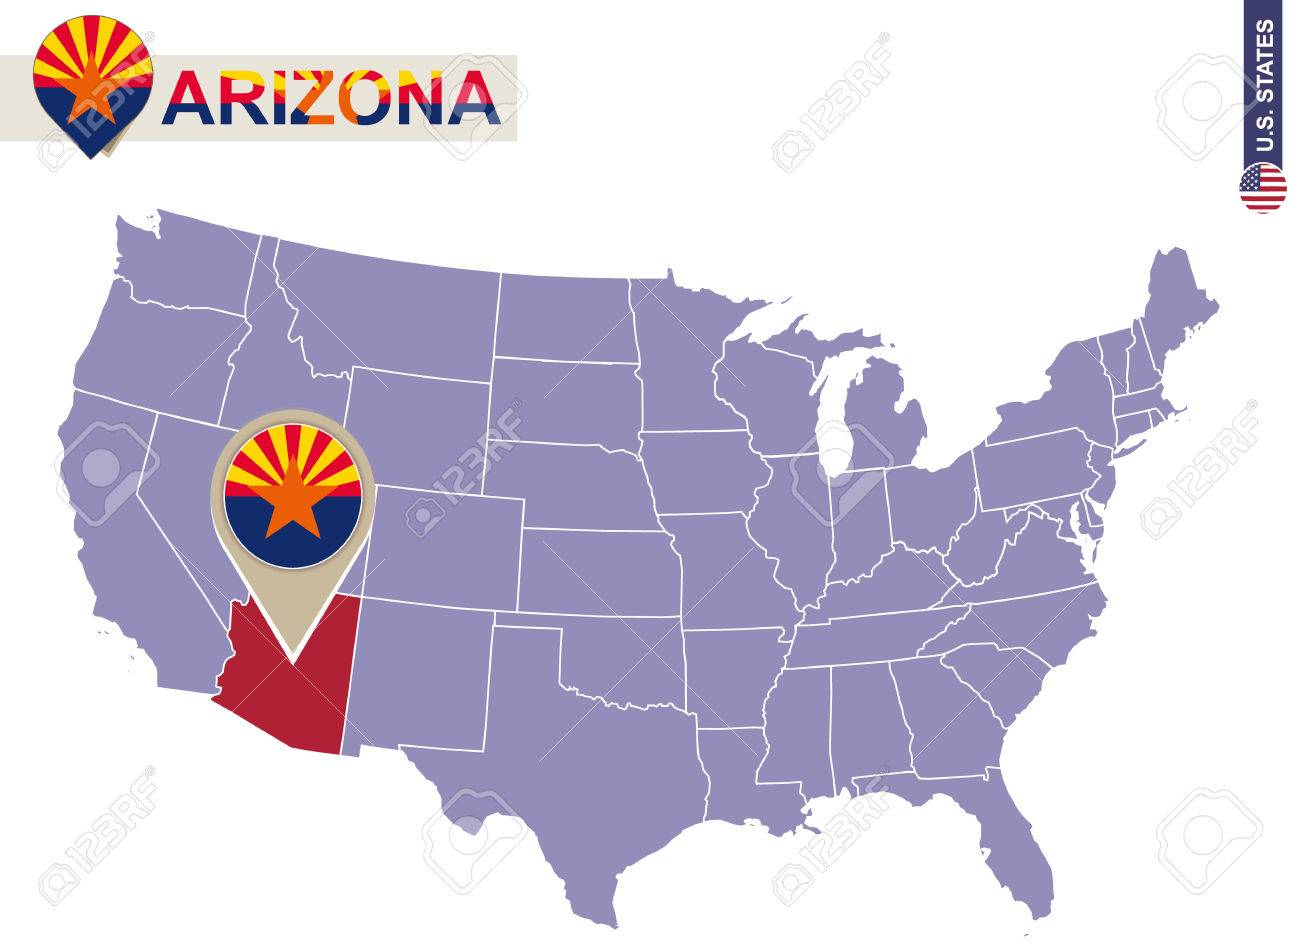 Arizona State On USA Map. Arizona Flag And Map. US States. Royalty ...